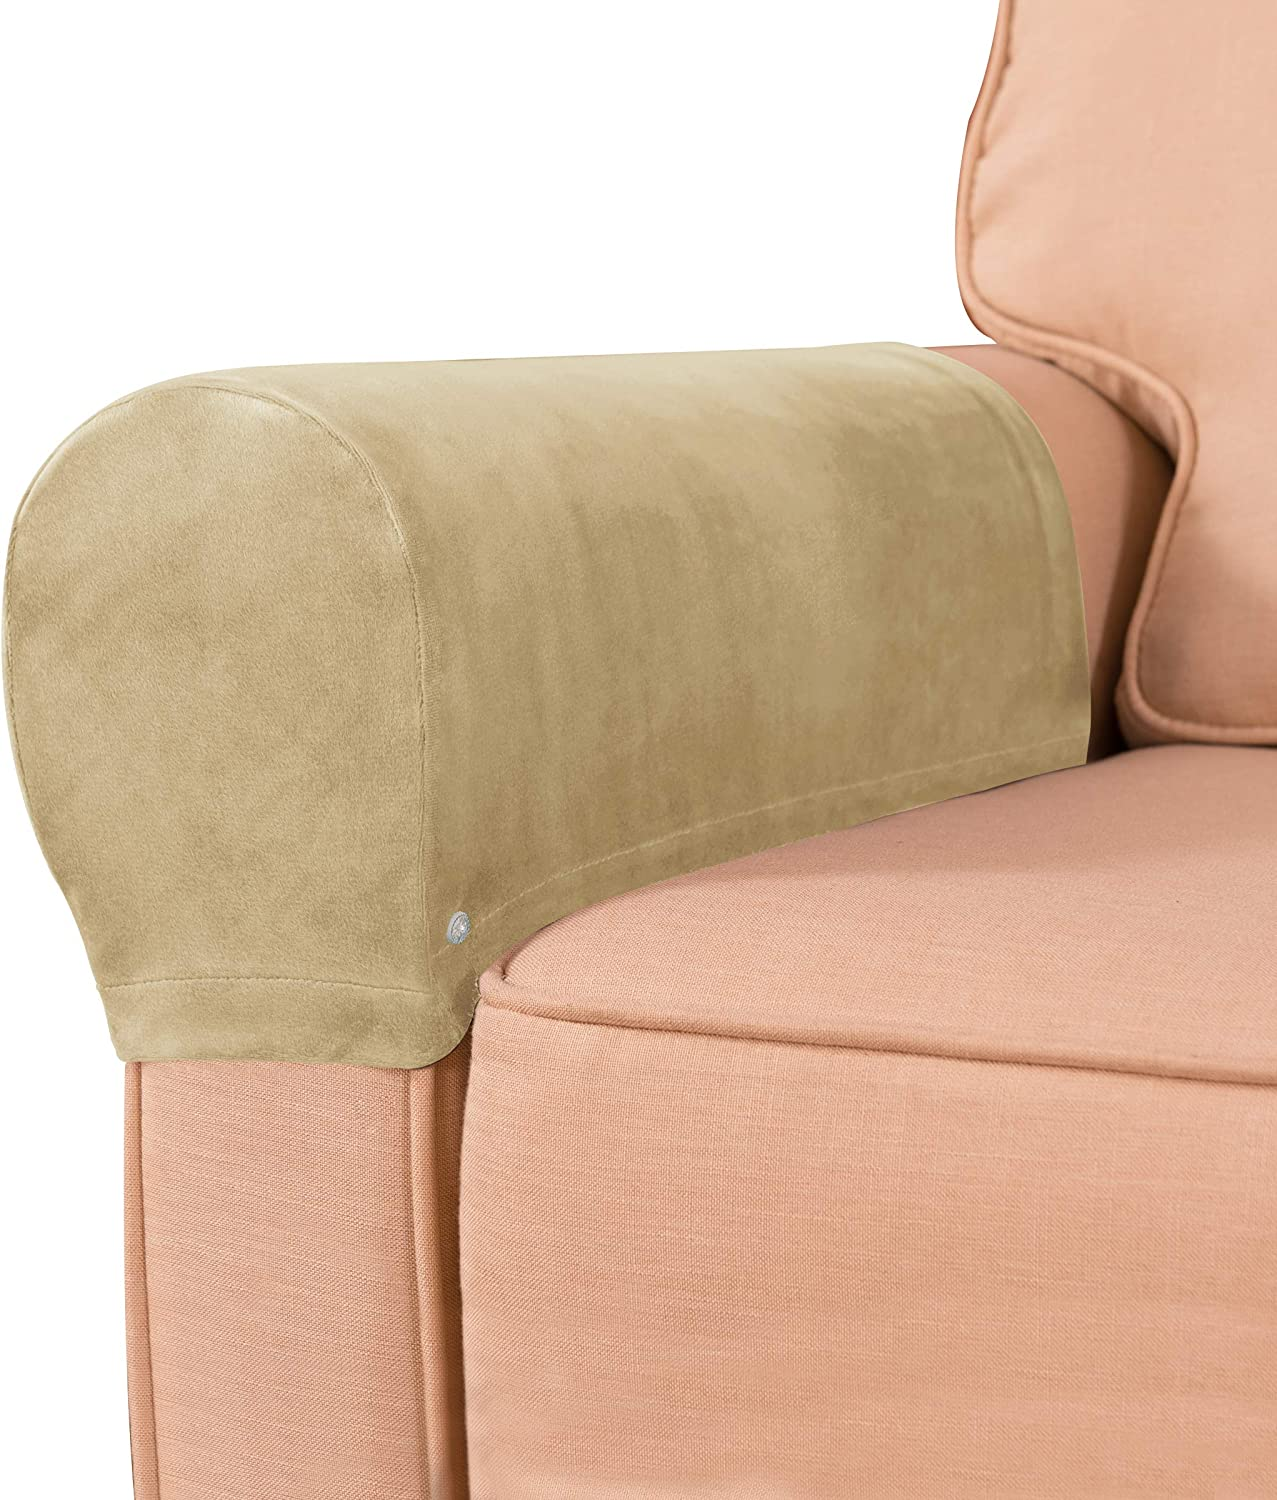 subrtex Velvet Armchair Covers Spandex Stretch Armrest Covers Couch Furniture Protector Armchair Slipcovers for Sofa with Free Twist Pins(Sand,2pcs)